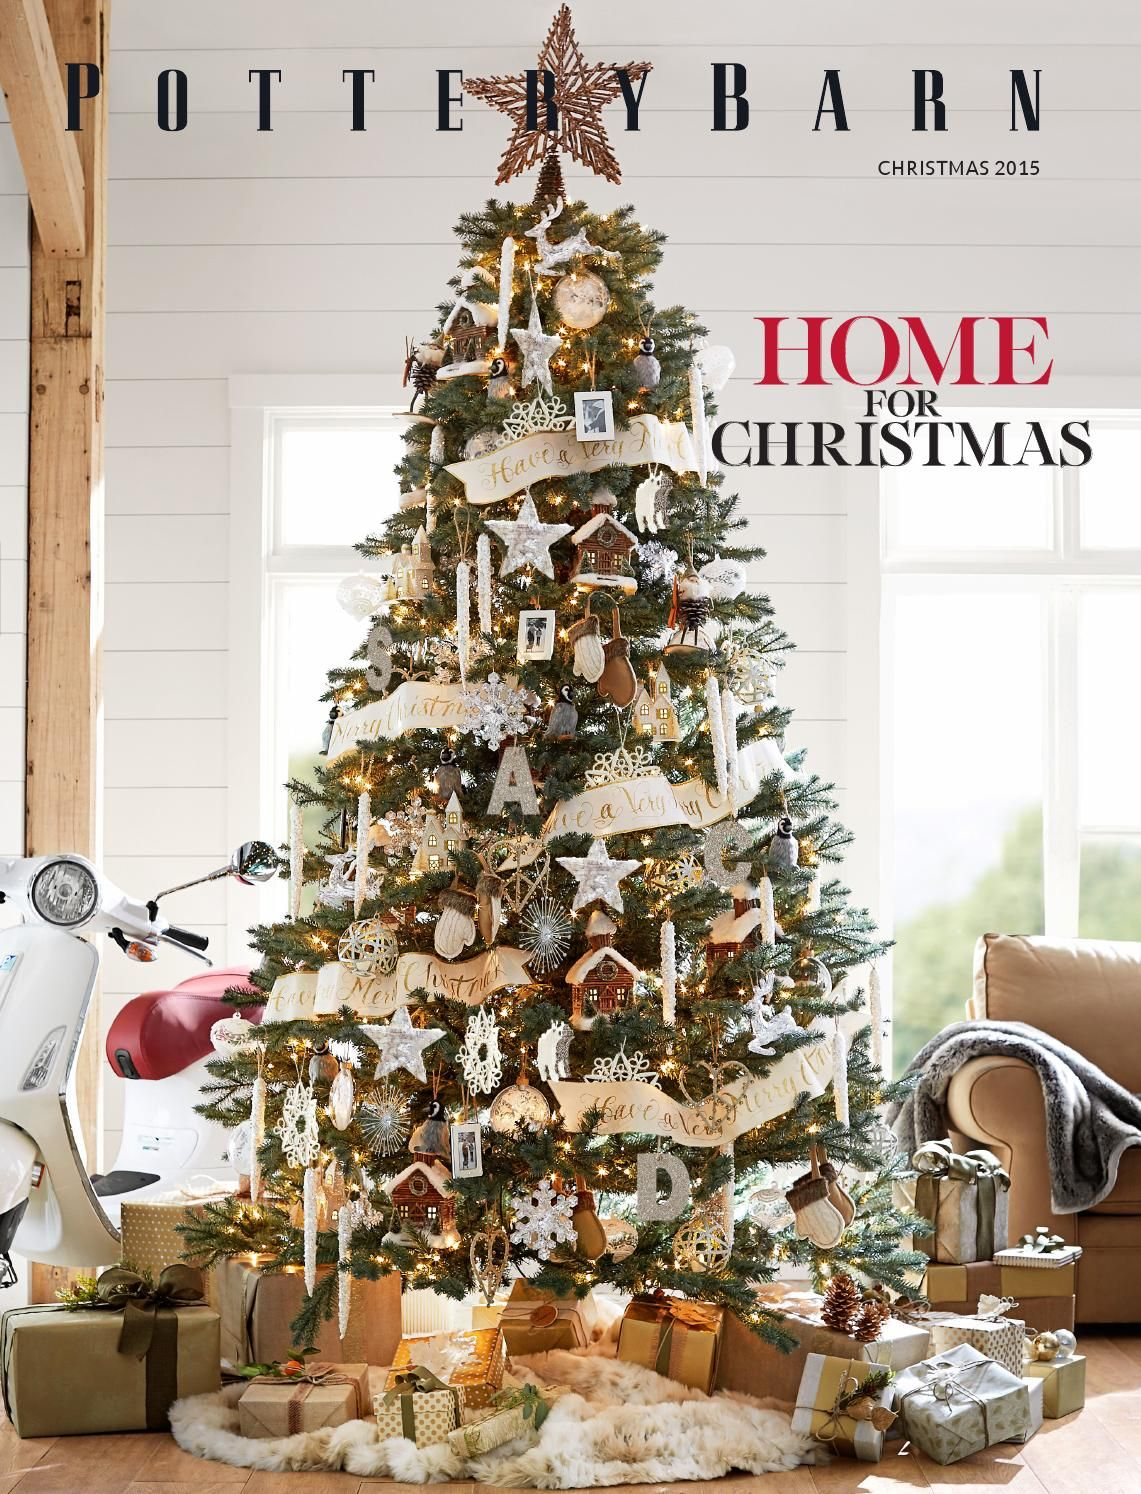 pottery barn australia christmas catalogue 2015 home for christmas like the white snowflakes